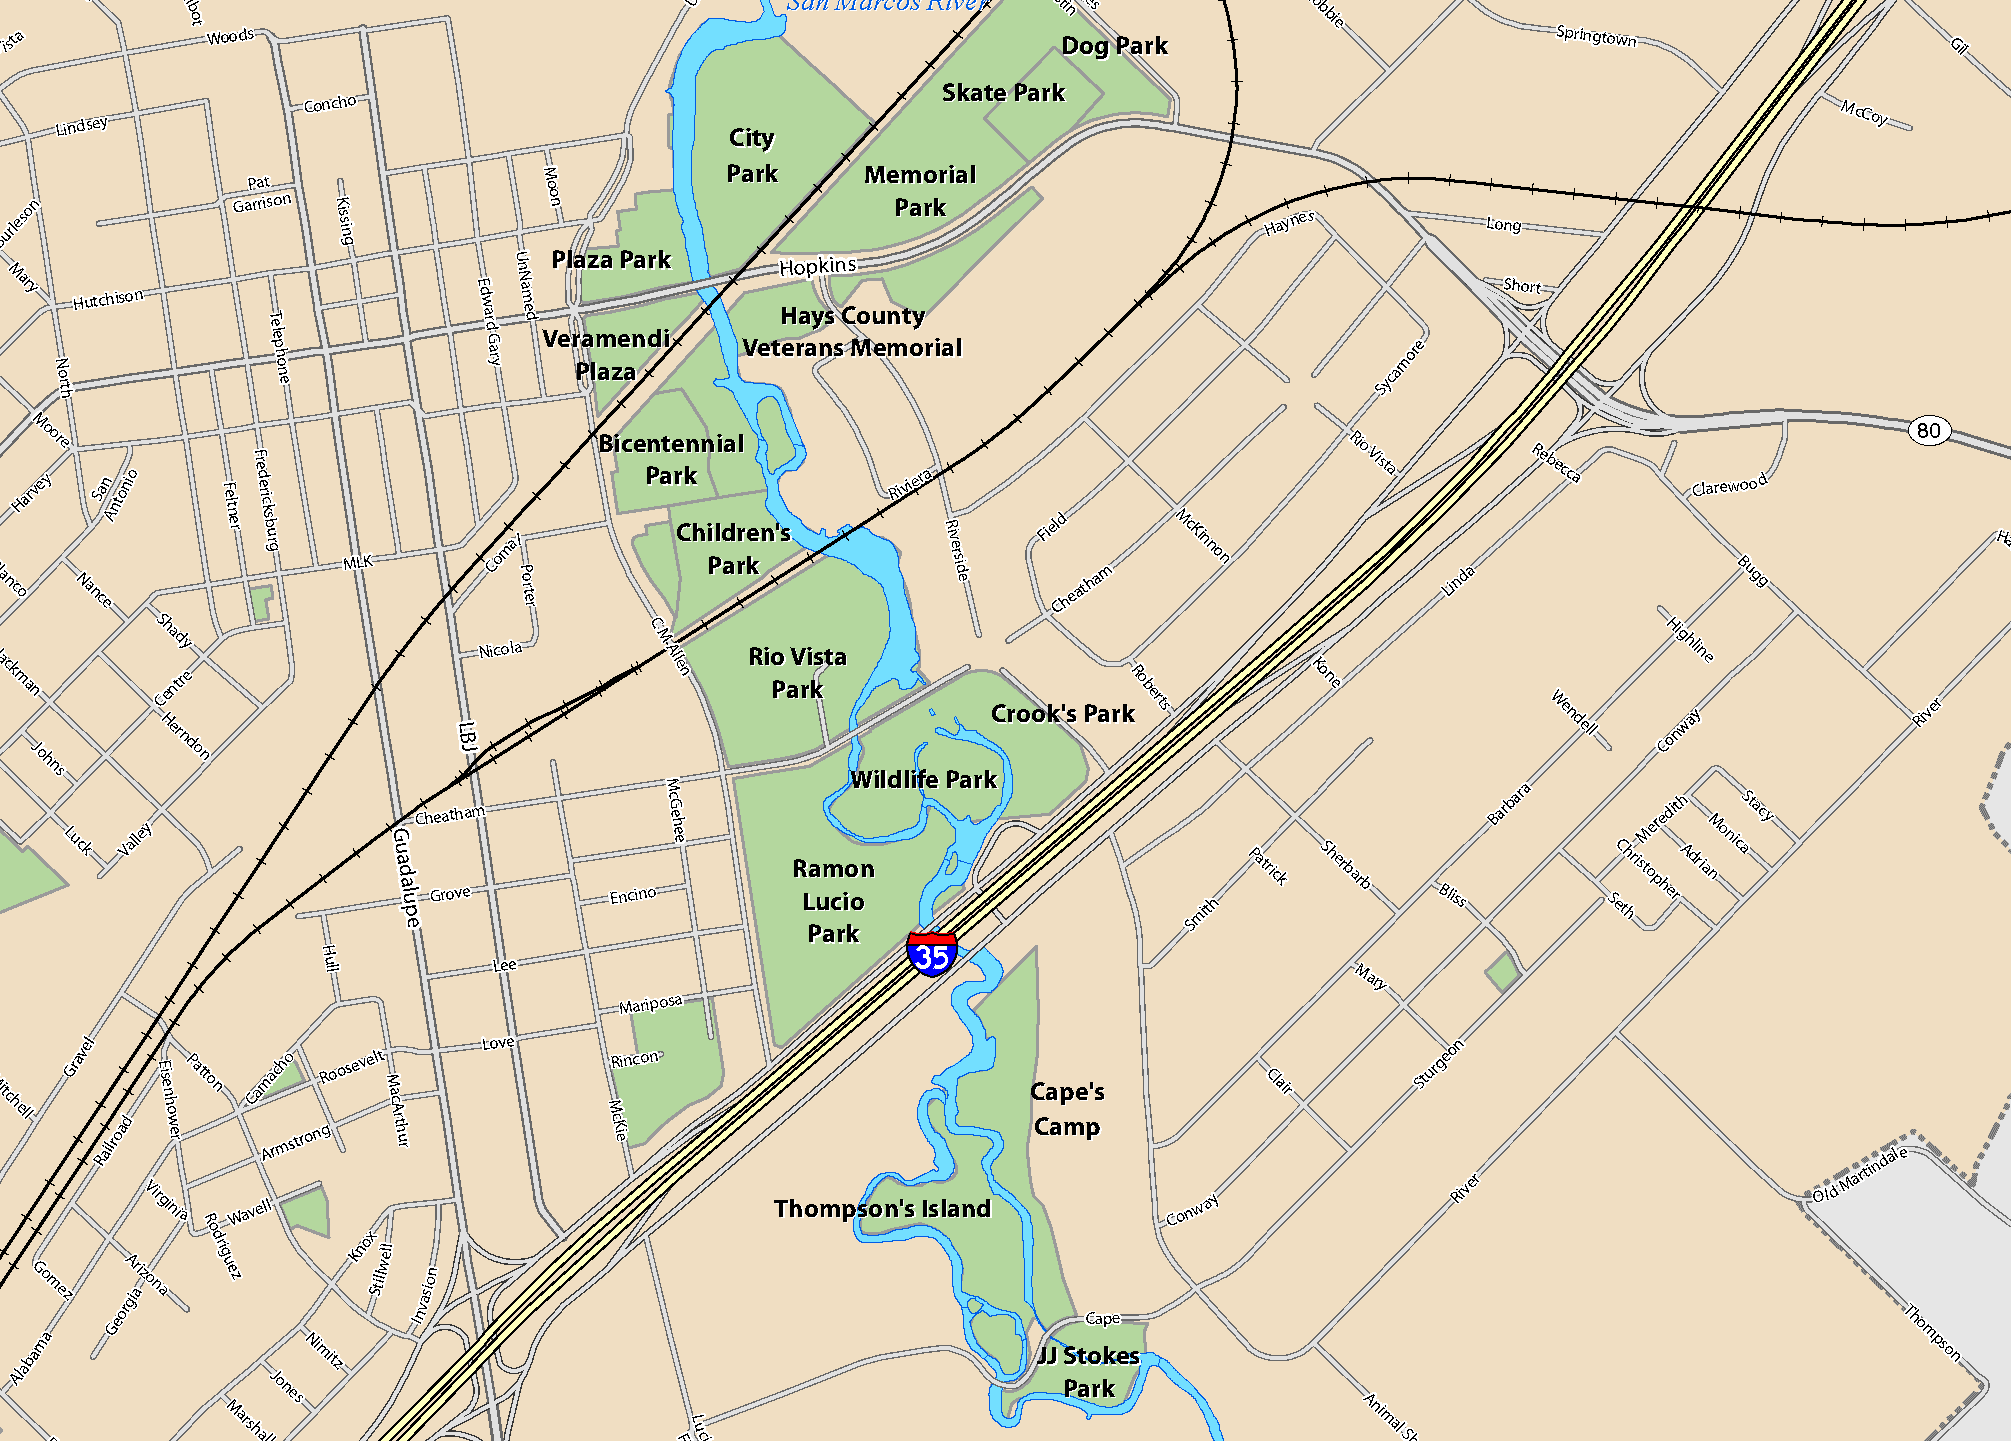 Map with San Marcos River Parks highlighted